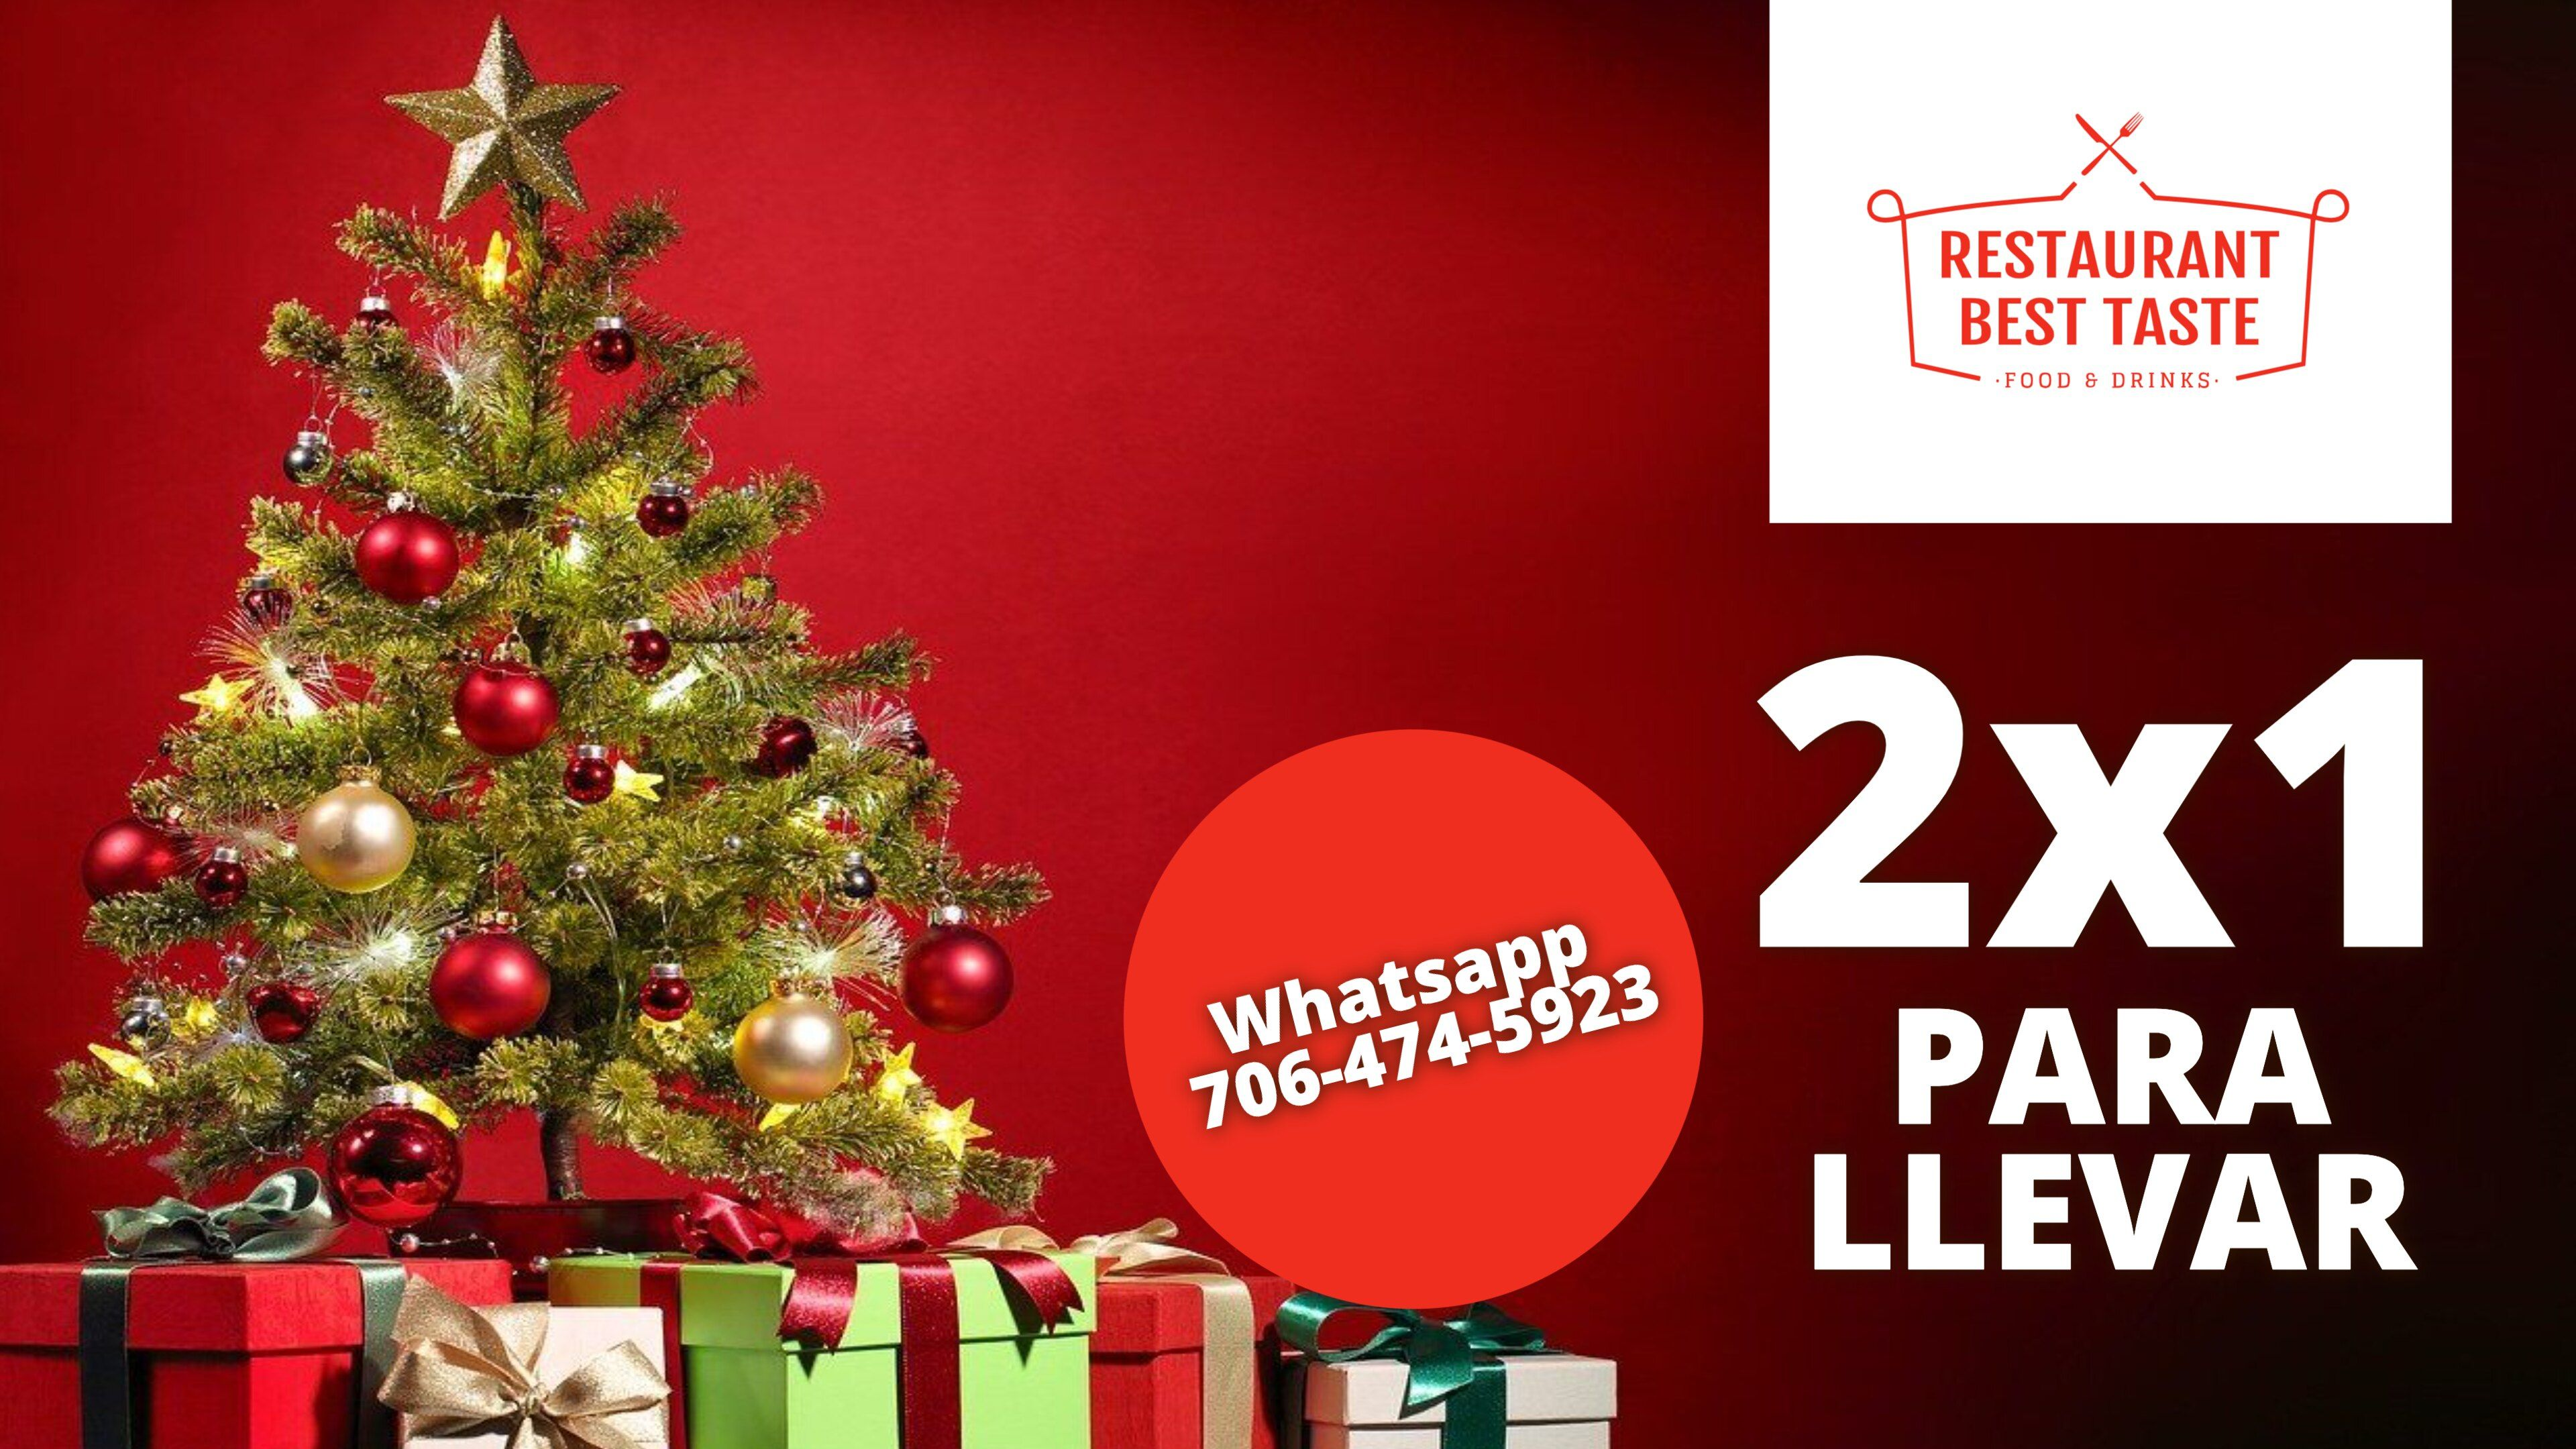 Oferta 2x1 Para Llevar Plantilla Horizontal Editable Christmas Campaign Business Christmas Christmas Marketing